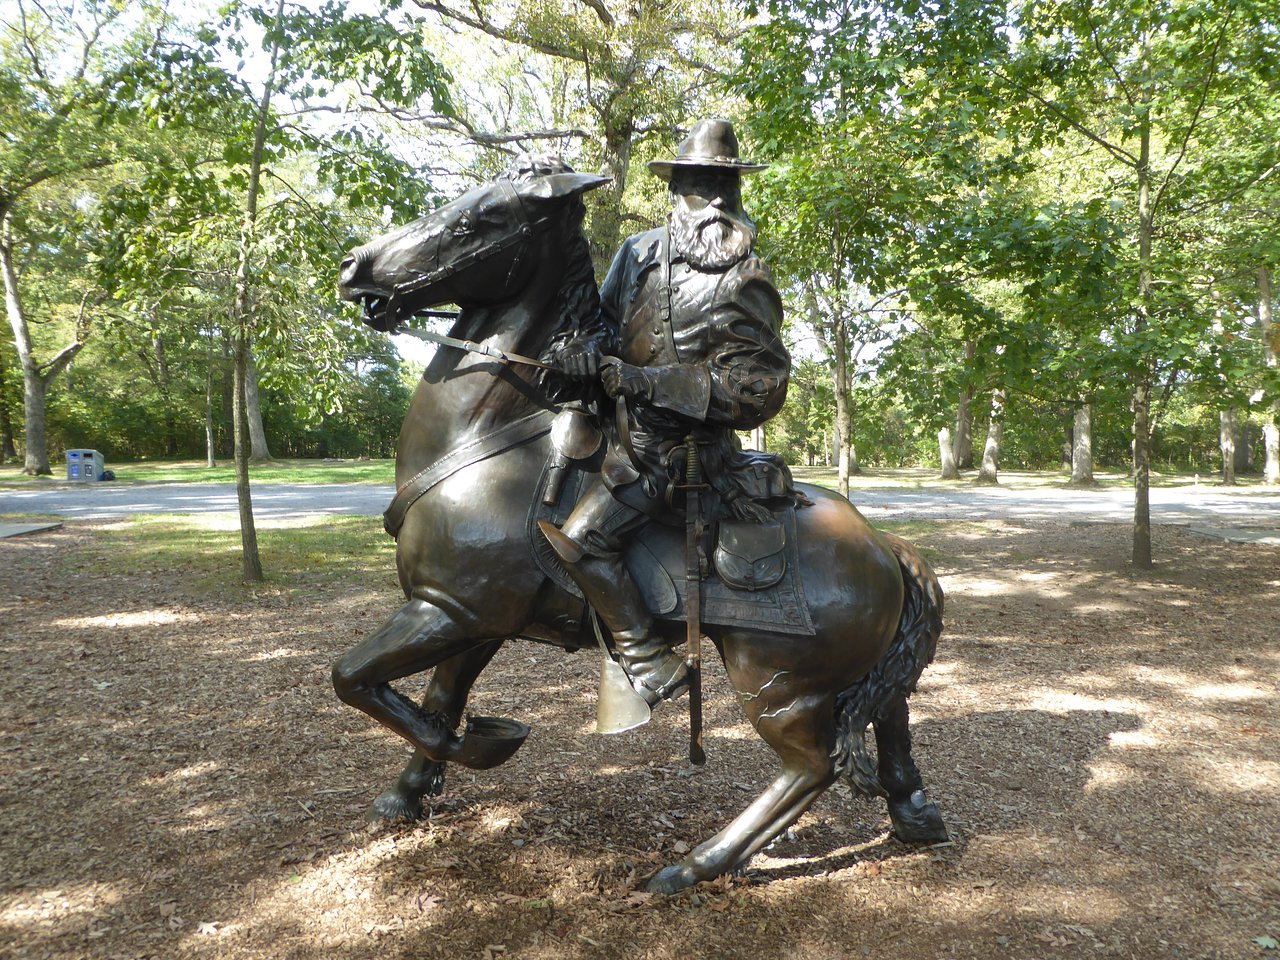 bronze equestrian statue of Confederate General James Longstreet at Pitzer Woods near Gettysburg, Pennsylvania